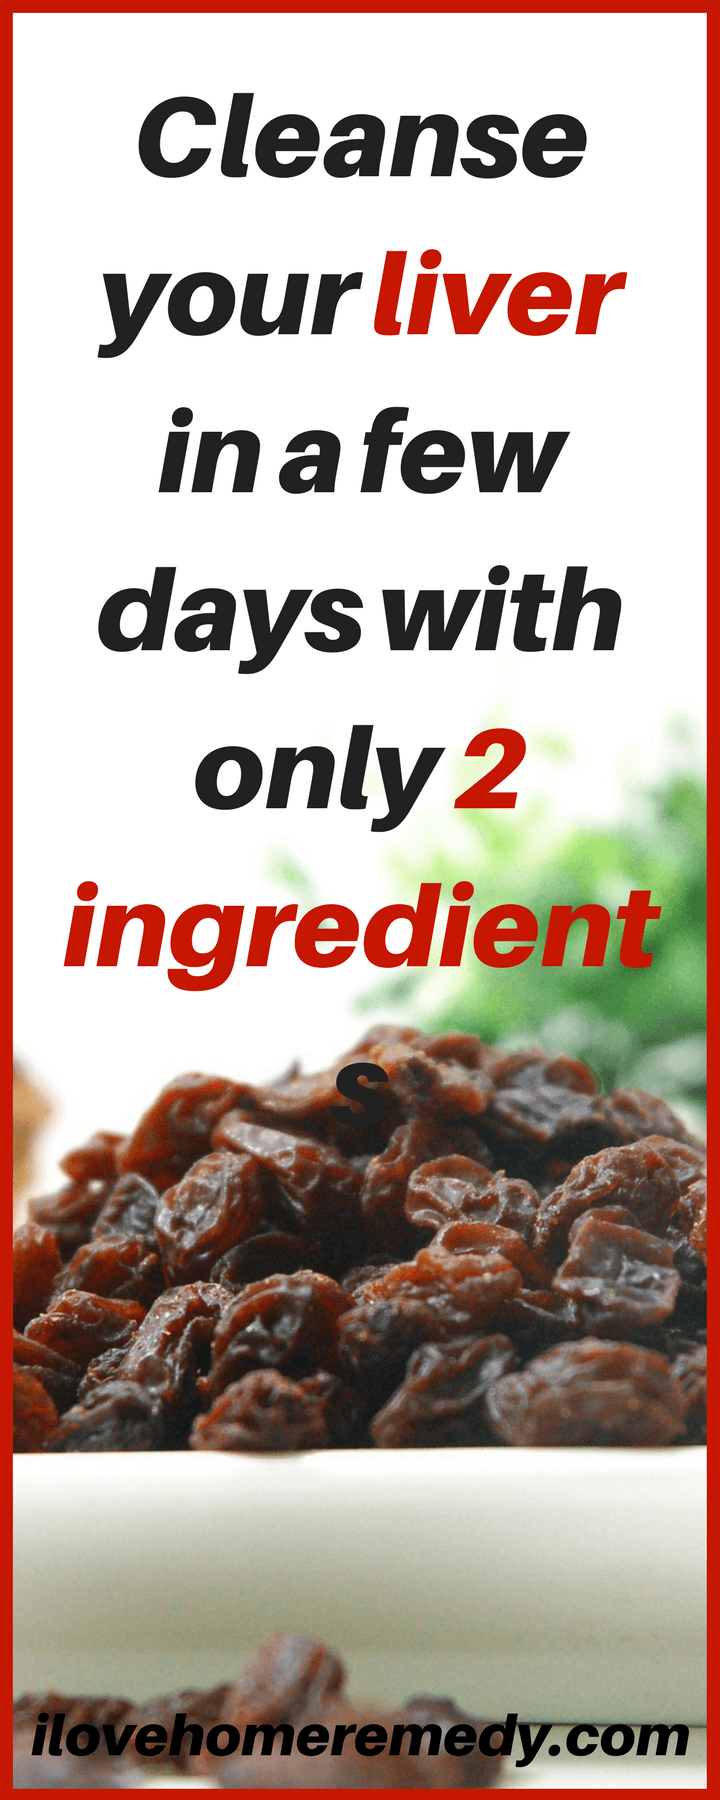 Cleanse your liver in a few days with only 2 ingredients cleanse cleanse your liver in a few days with only 2 ingredients forumfinder Image collections